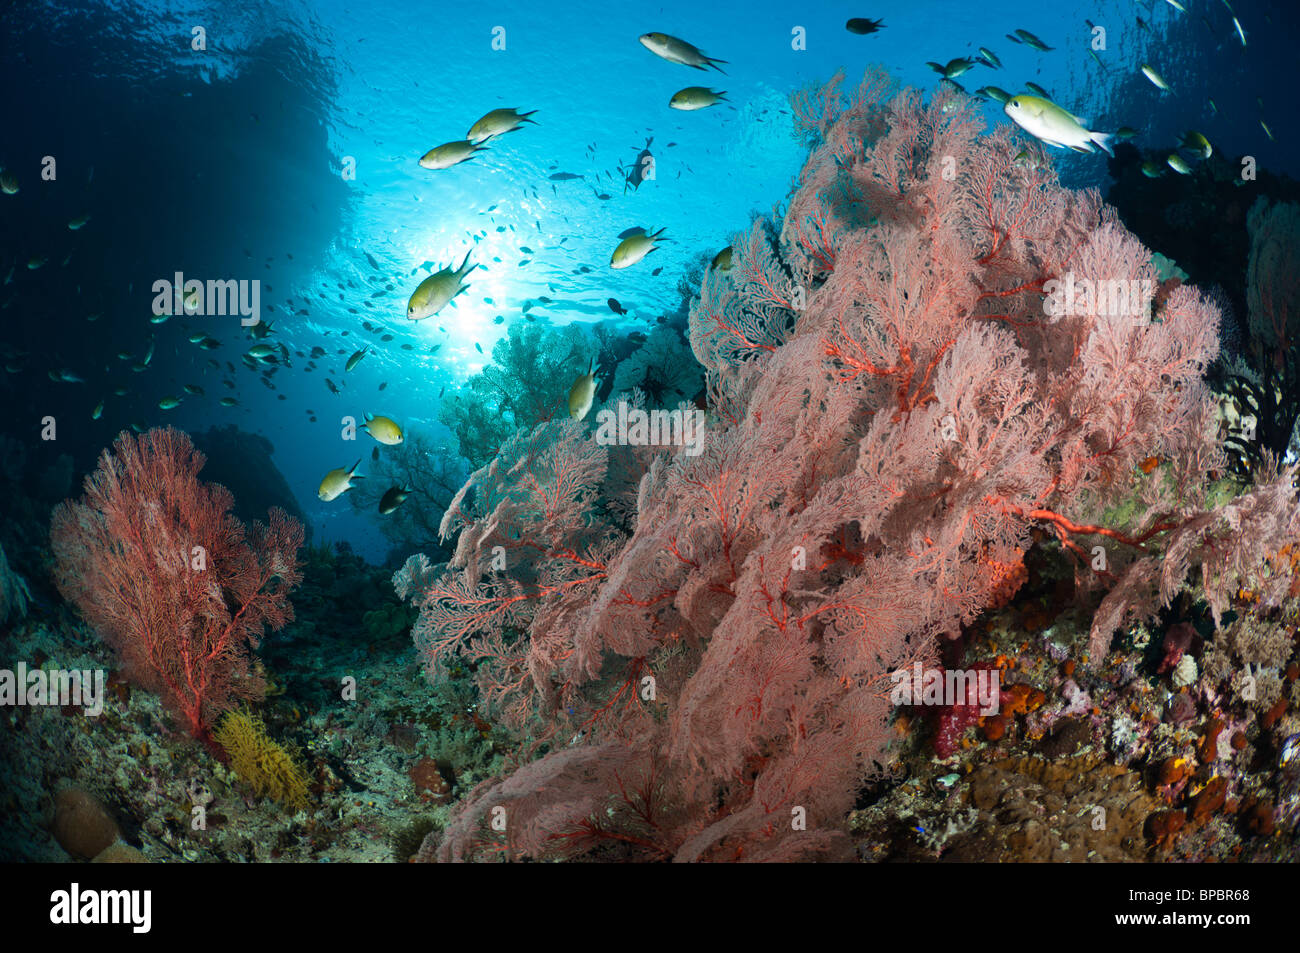 Large sea fans surrounded by a school of damselfish, Misool, West Papua, Indonesia. - Stock Image